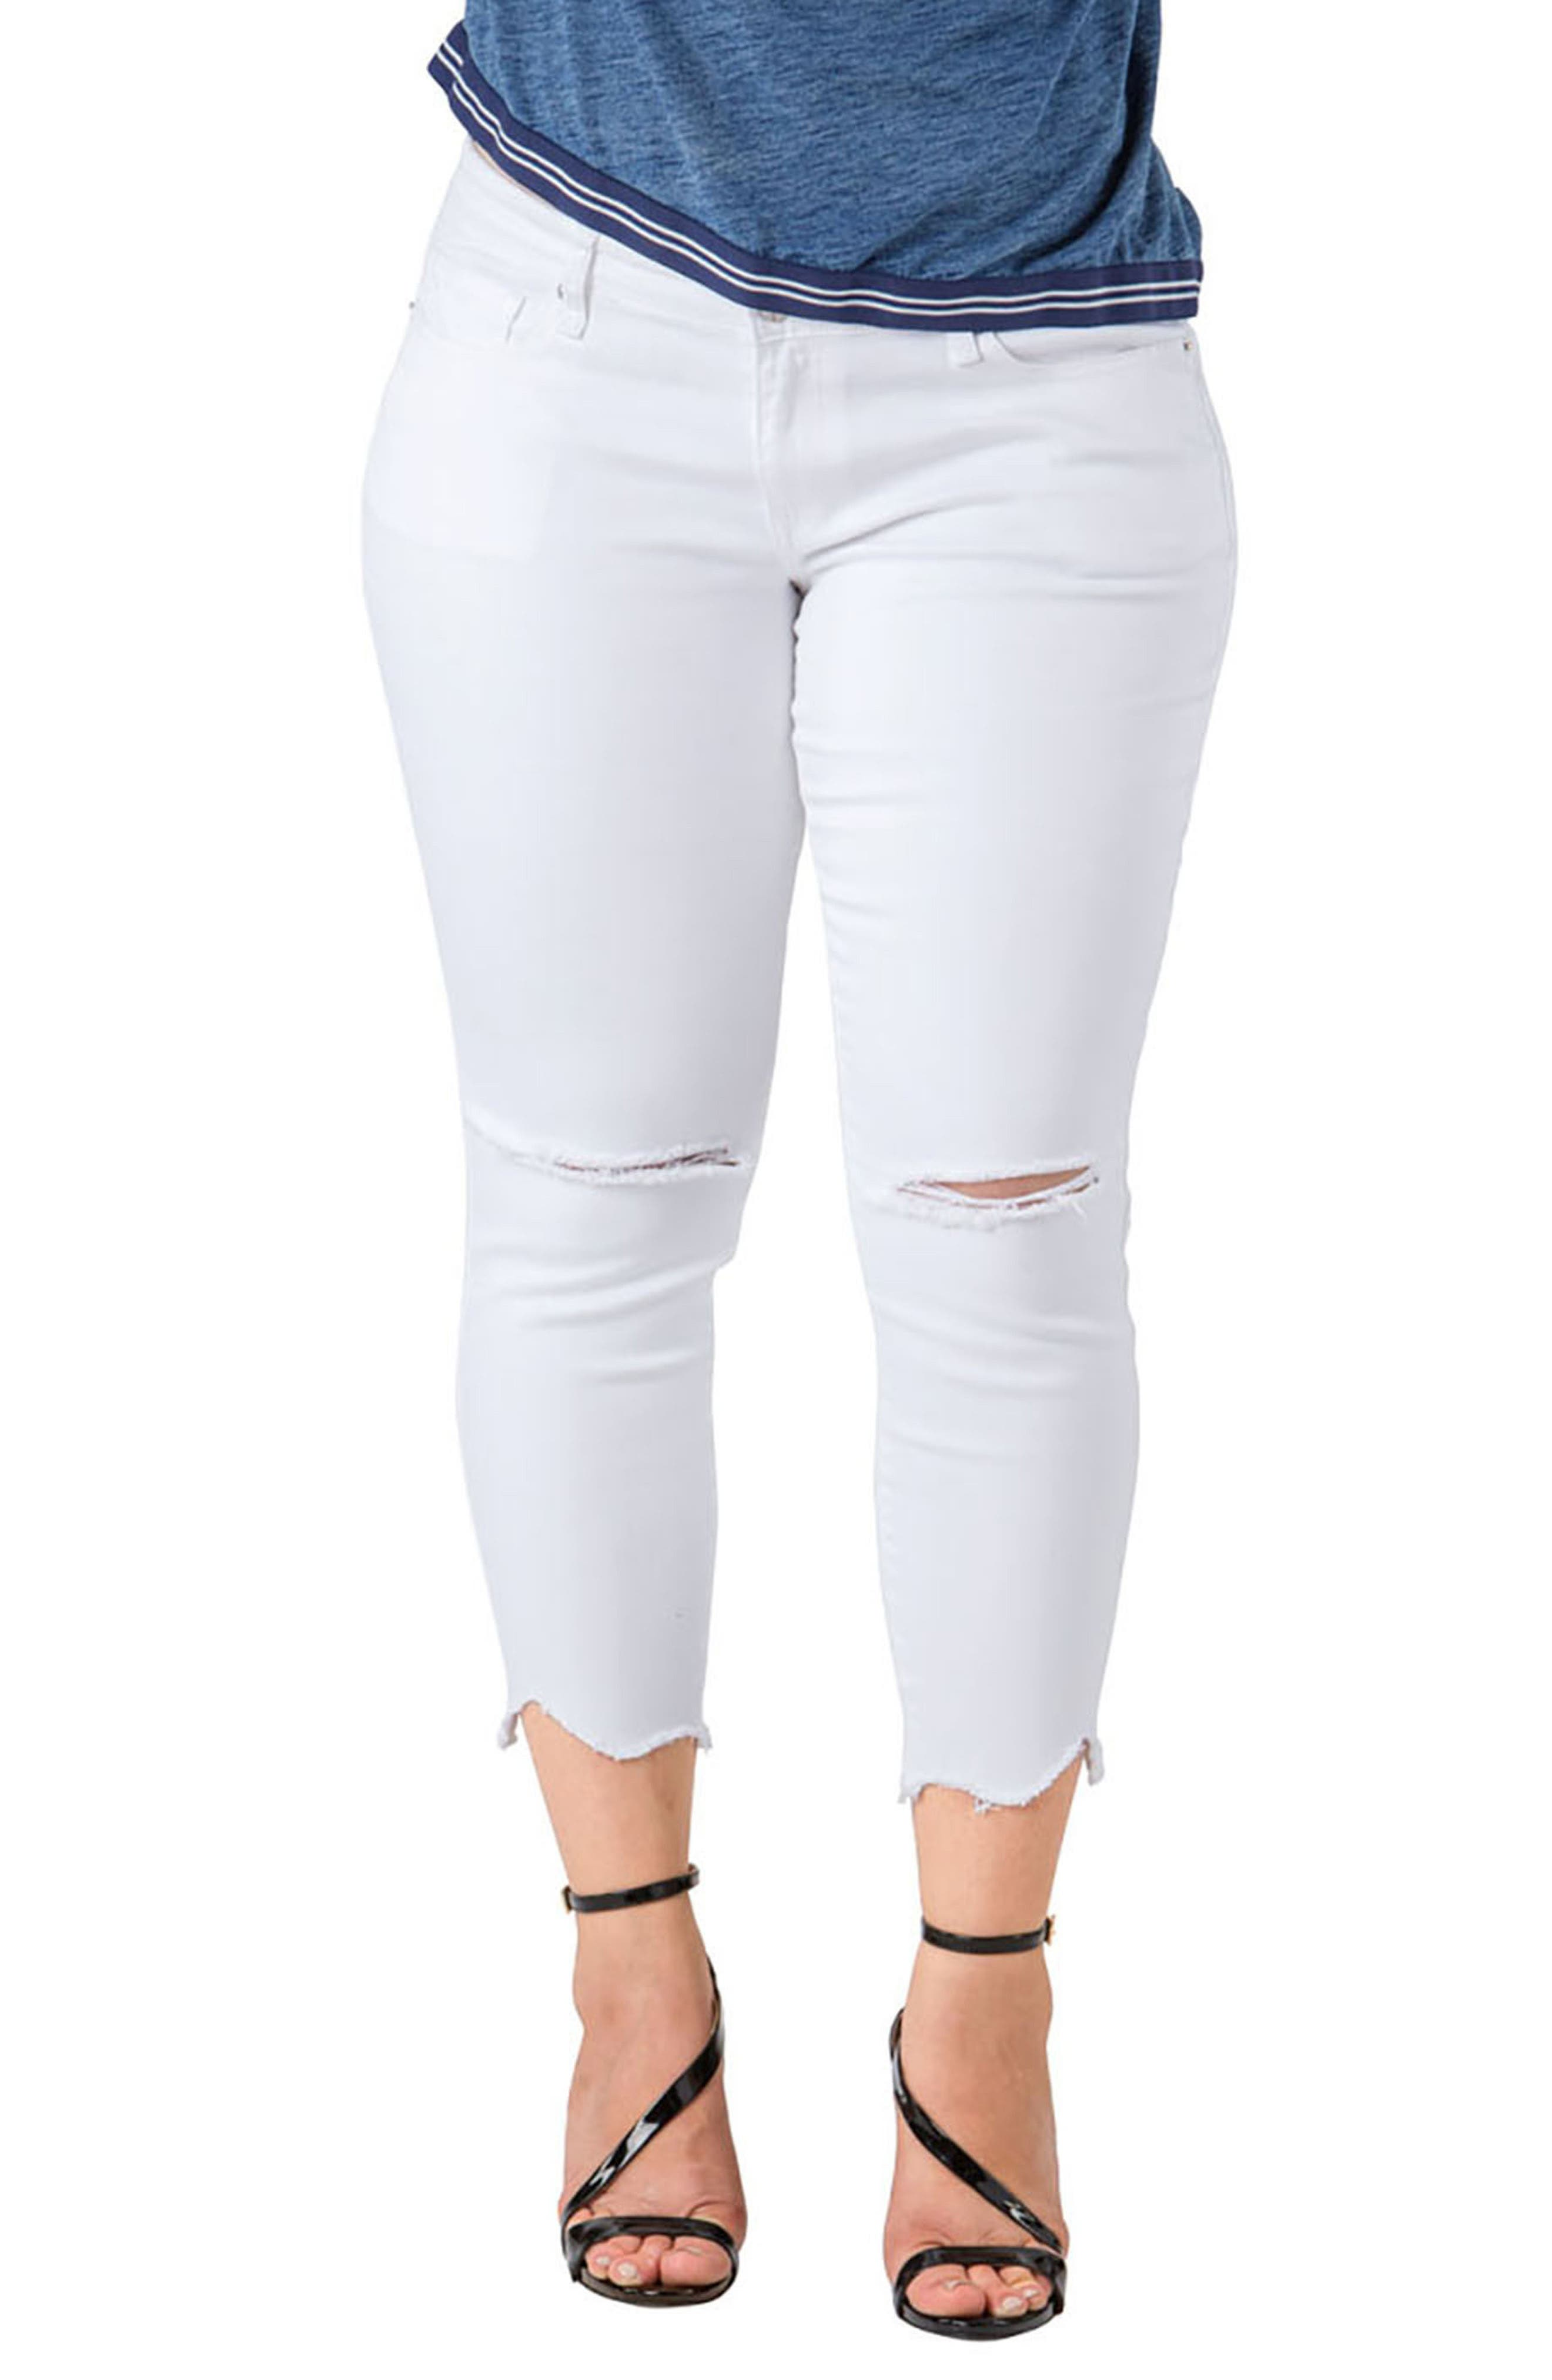 STANDARDS & PRACTICES, Tessa Chewed Hem Stretch Skinny Jeans, Main thumbnail 1, color, WHITE